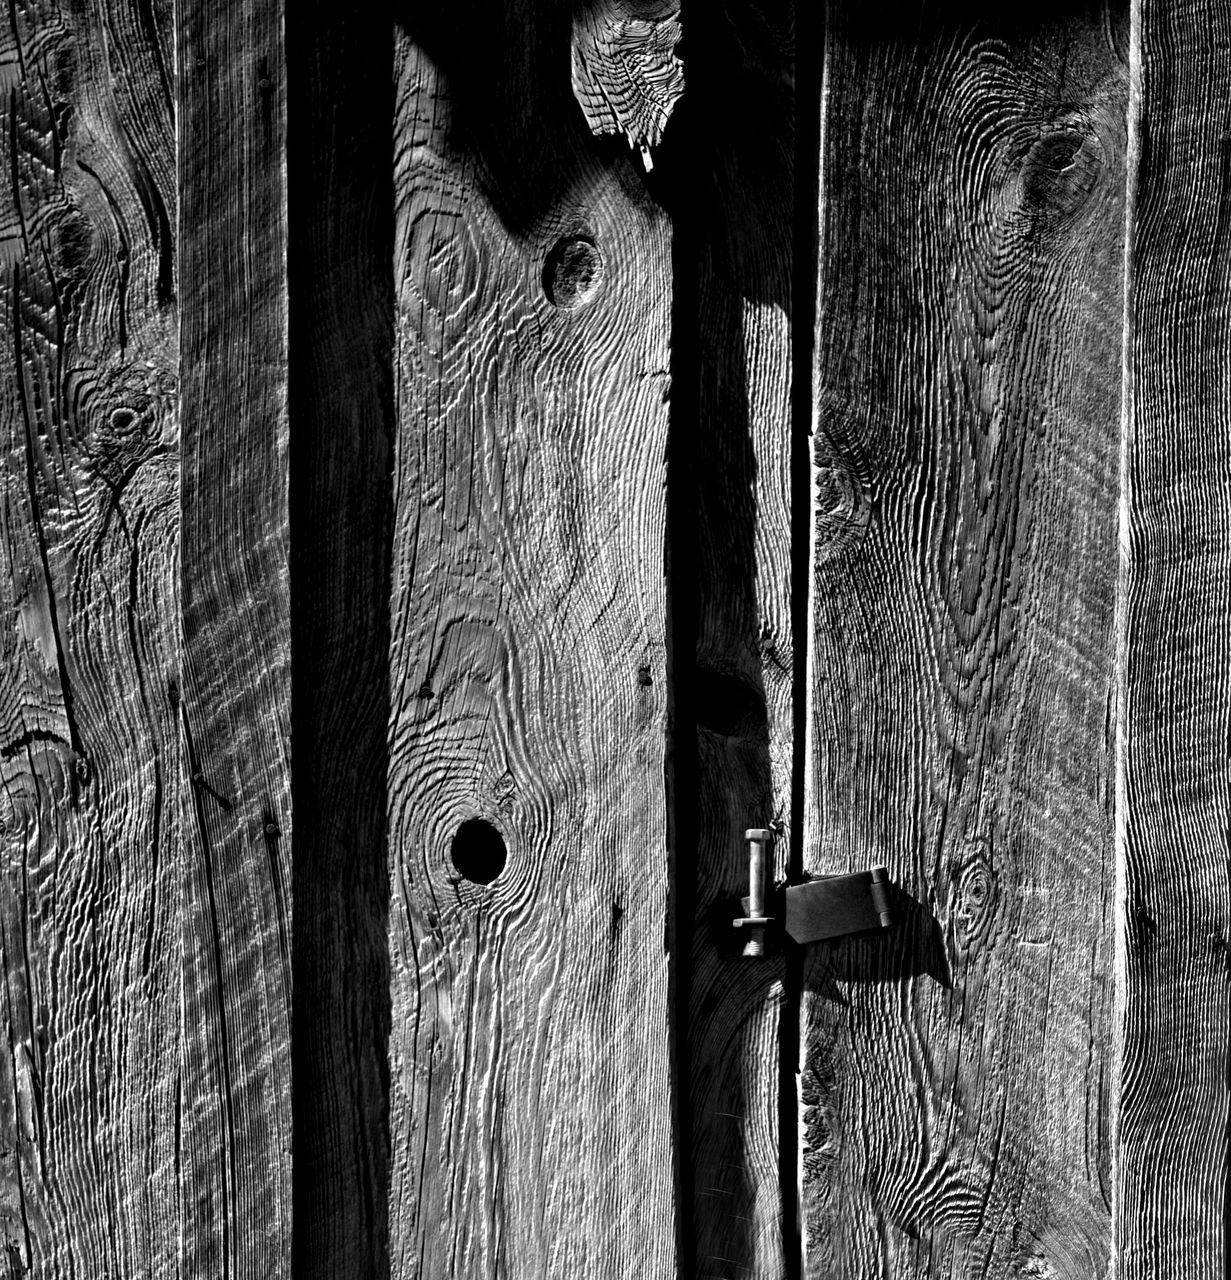 door, wood - material, close-up, no people, full frame, day, backgrounds, outdoors, protection, textured, latch, hinge